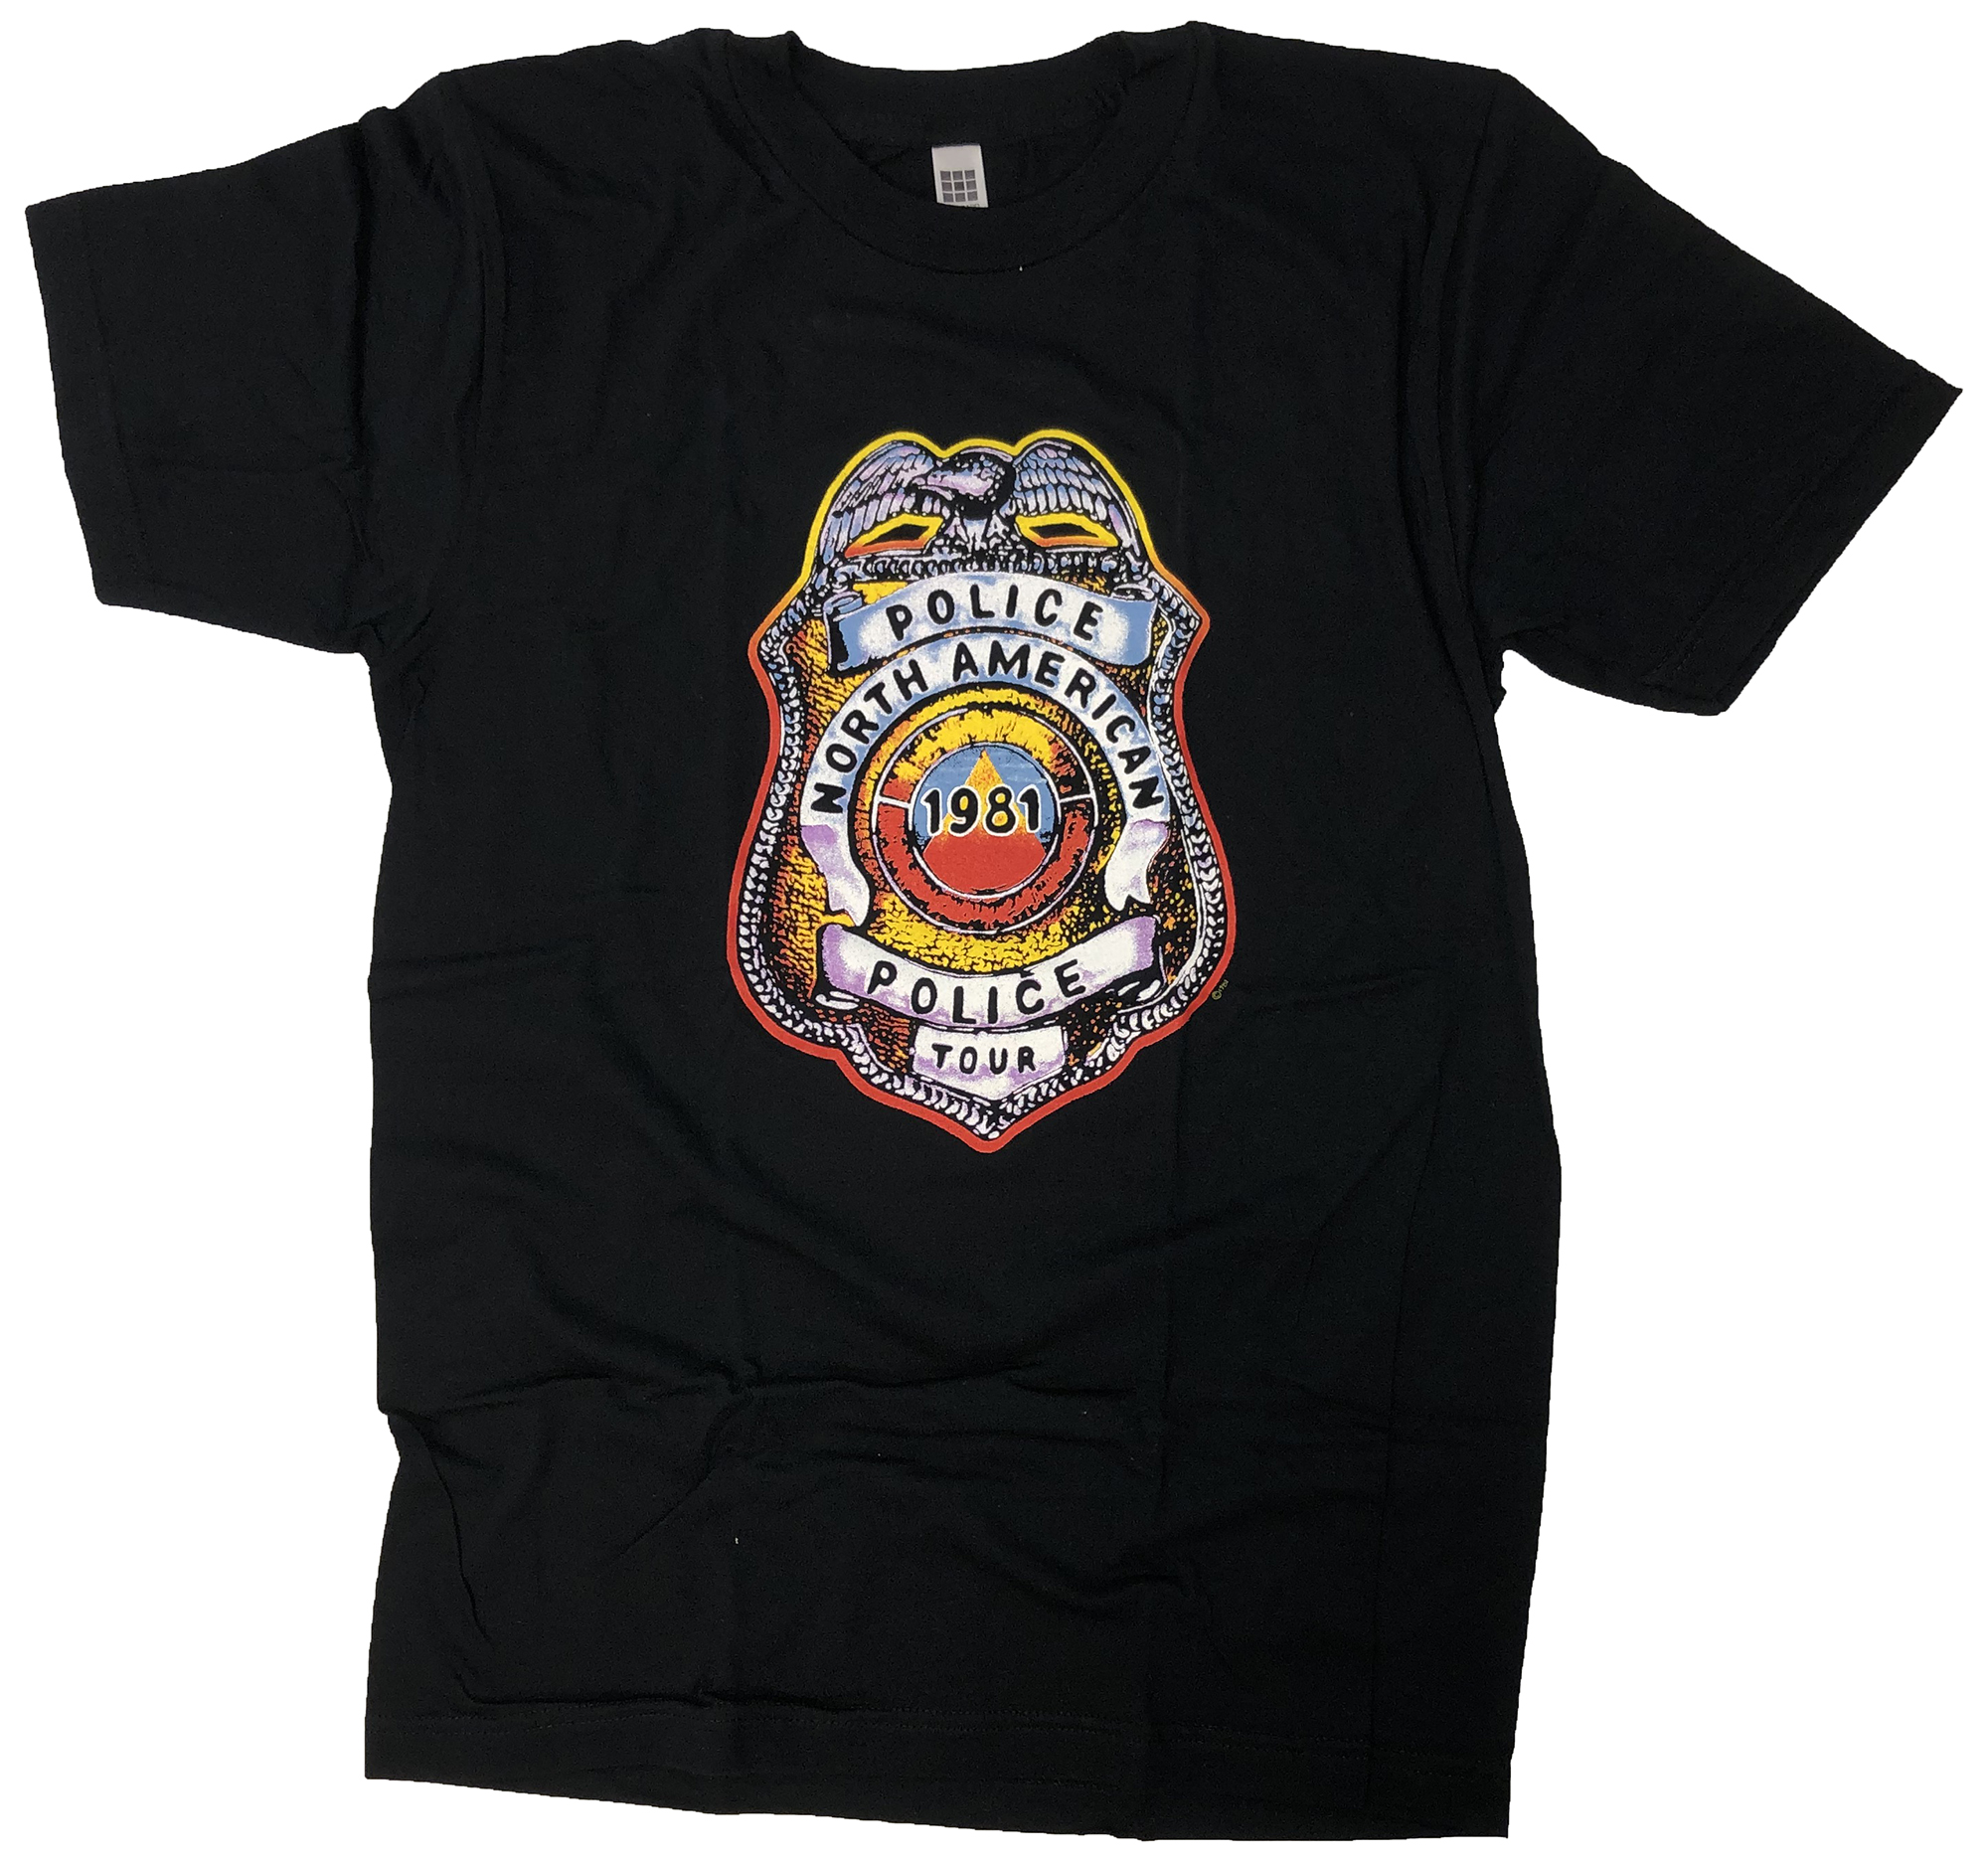 The Police Women's T-Shirt